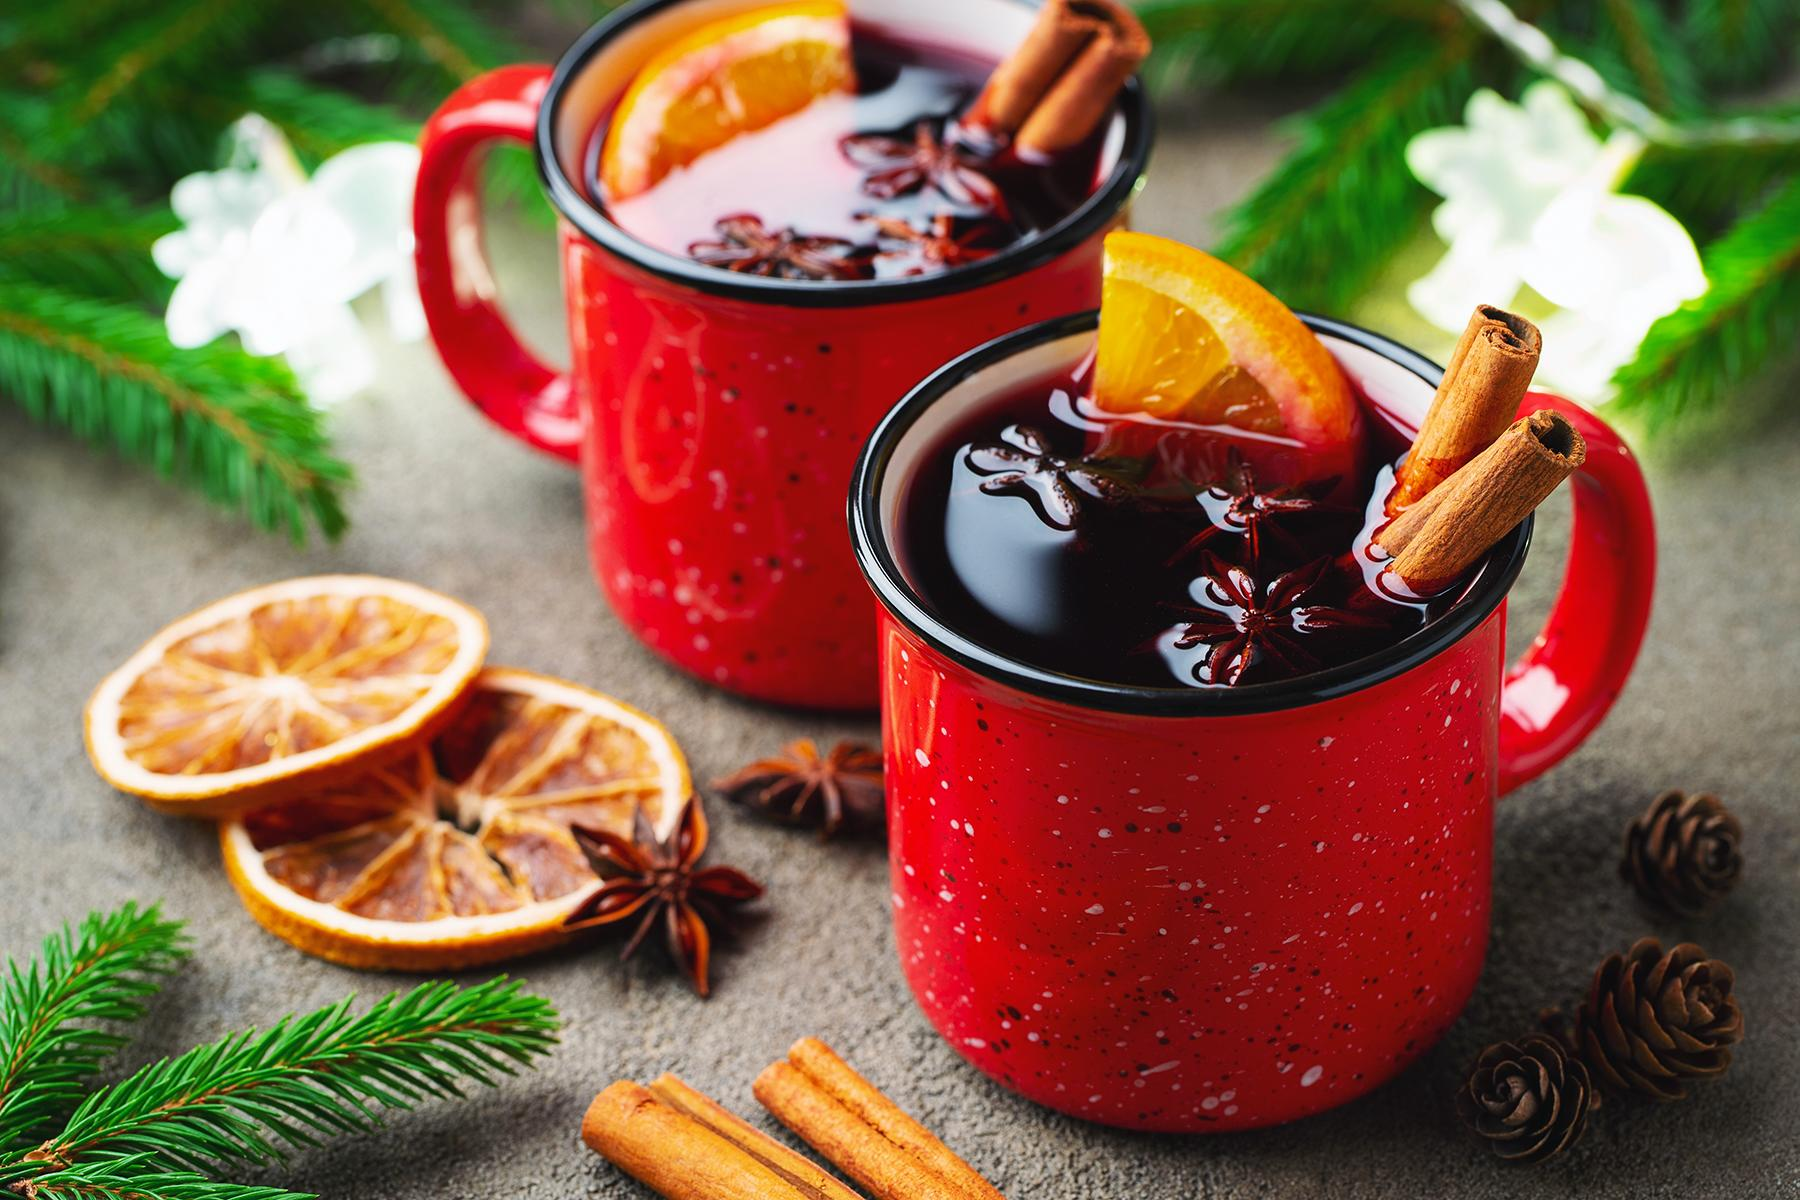 Holiday Cheers: 9 Boozy Christmas Drinks from Around the World